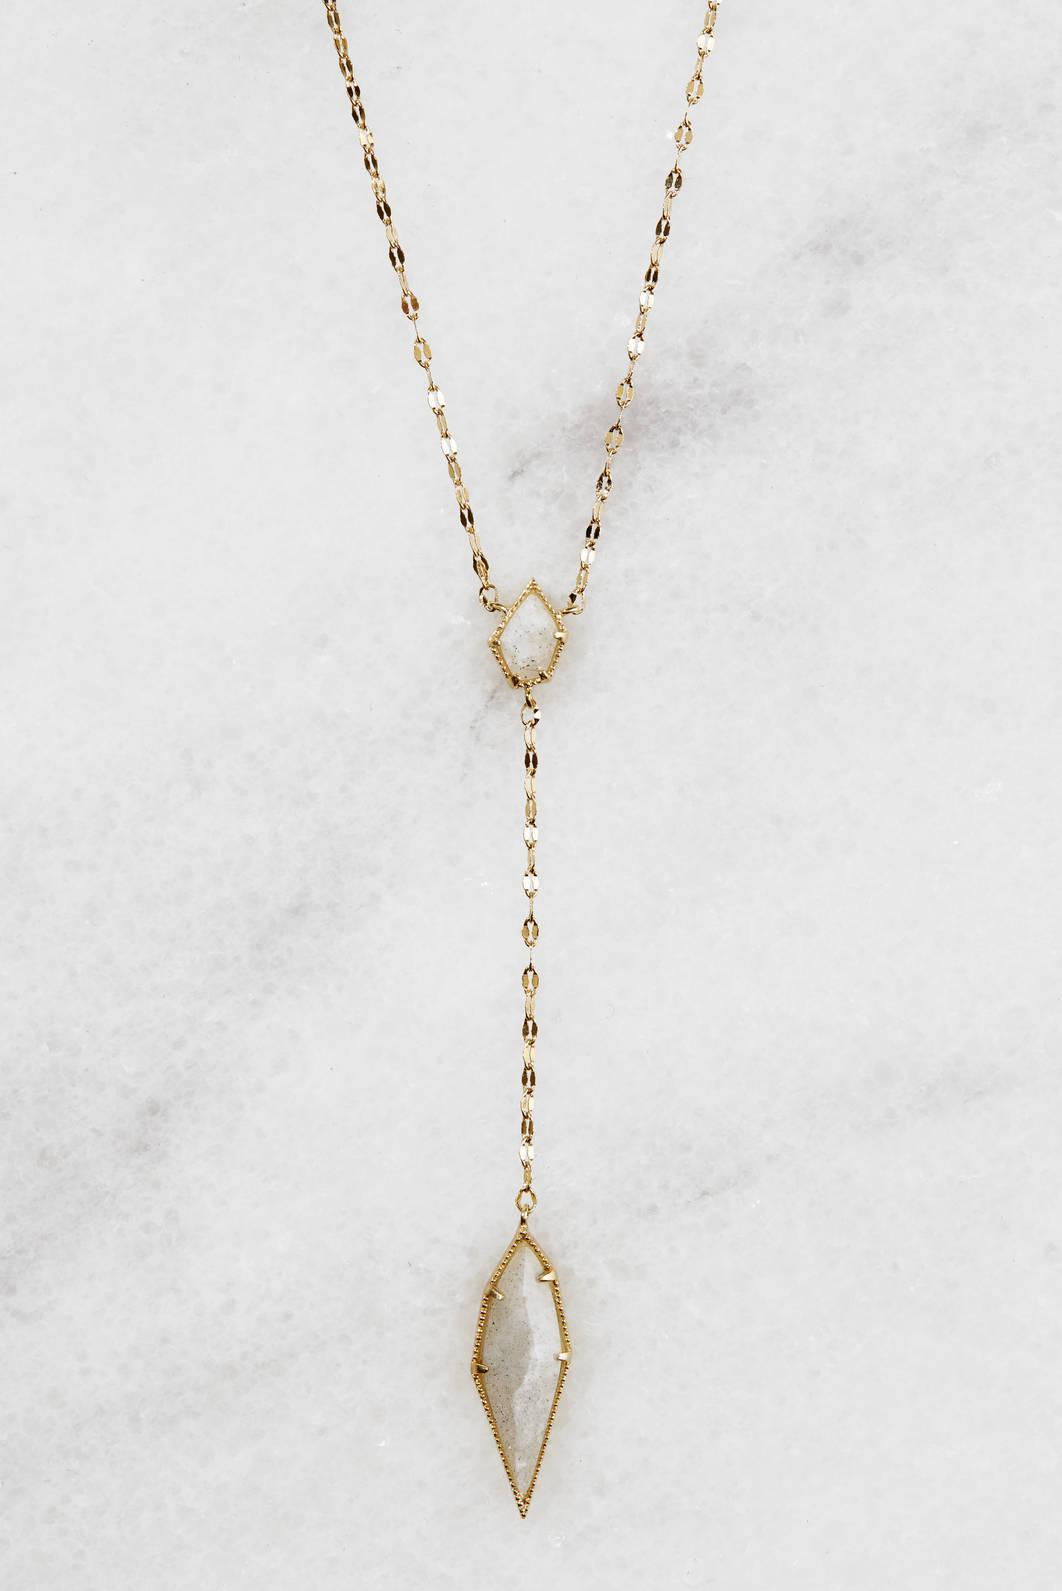 Tai Jewelry Gold Chain Necklace With Labradorite Gold kvnpHMfY6D